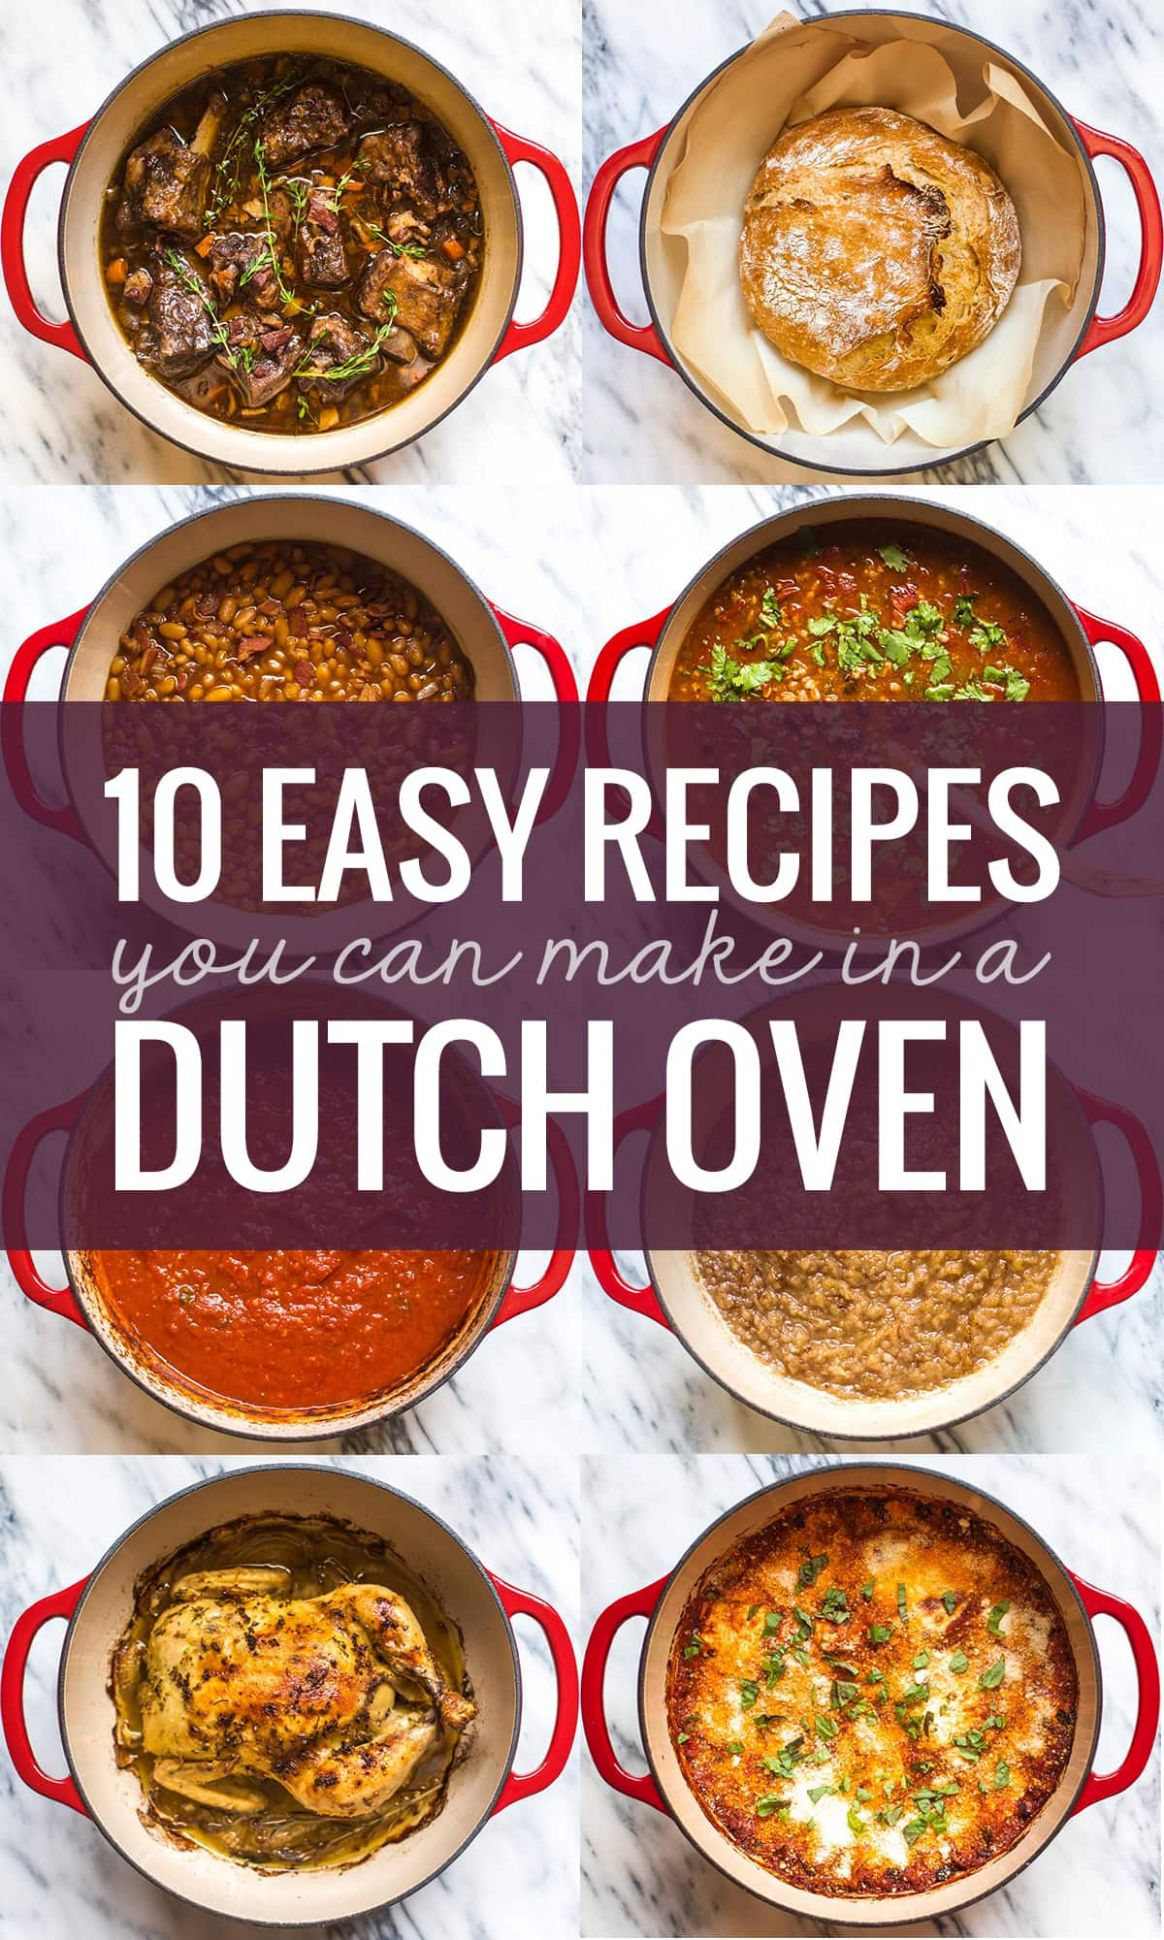 8 Easy Recipes You Can Make in a Dutch Oven - Pinch of Yum - Easy Recipes In Oven